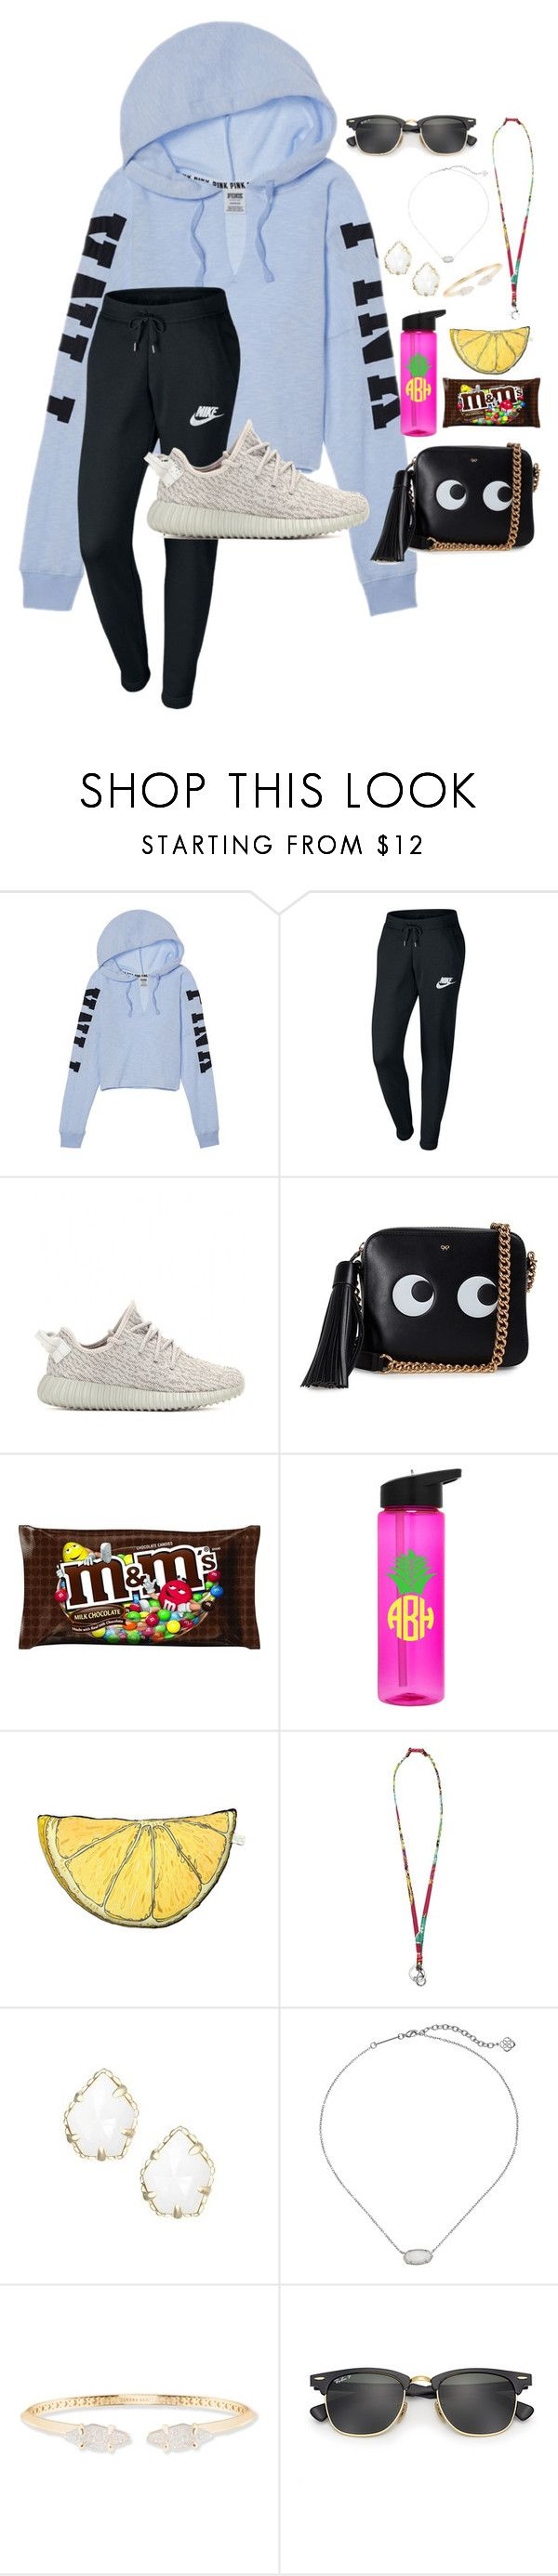 ~pm me~ by taybug2147 ❤ liked on Polyvore featuring NIKE, adidas Originals, Anya Hindmarch, Silken Favours, Vera Bradley, Kendra Scott and Ray-Ban